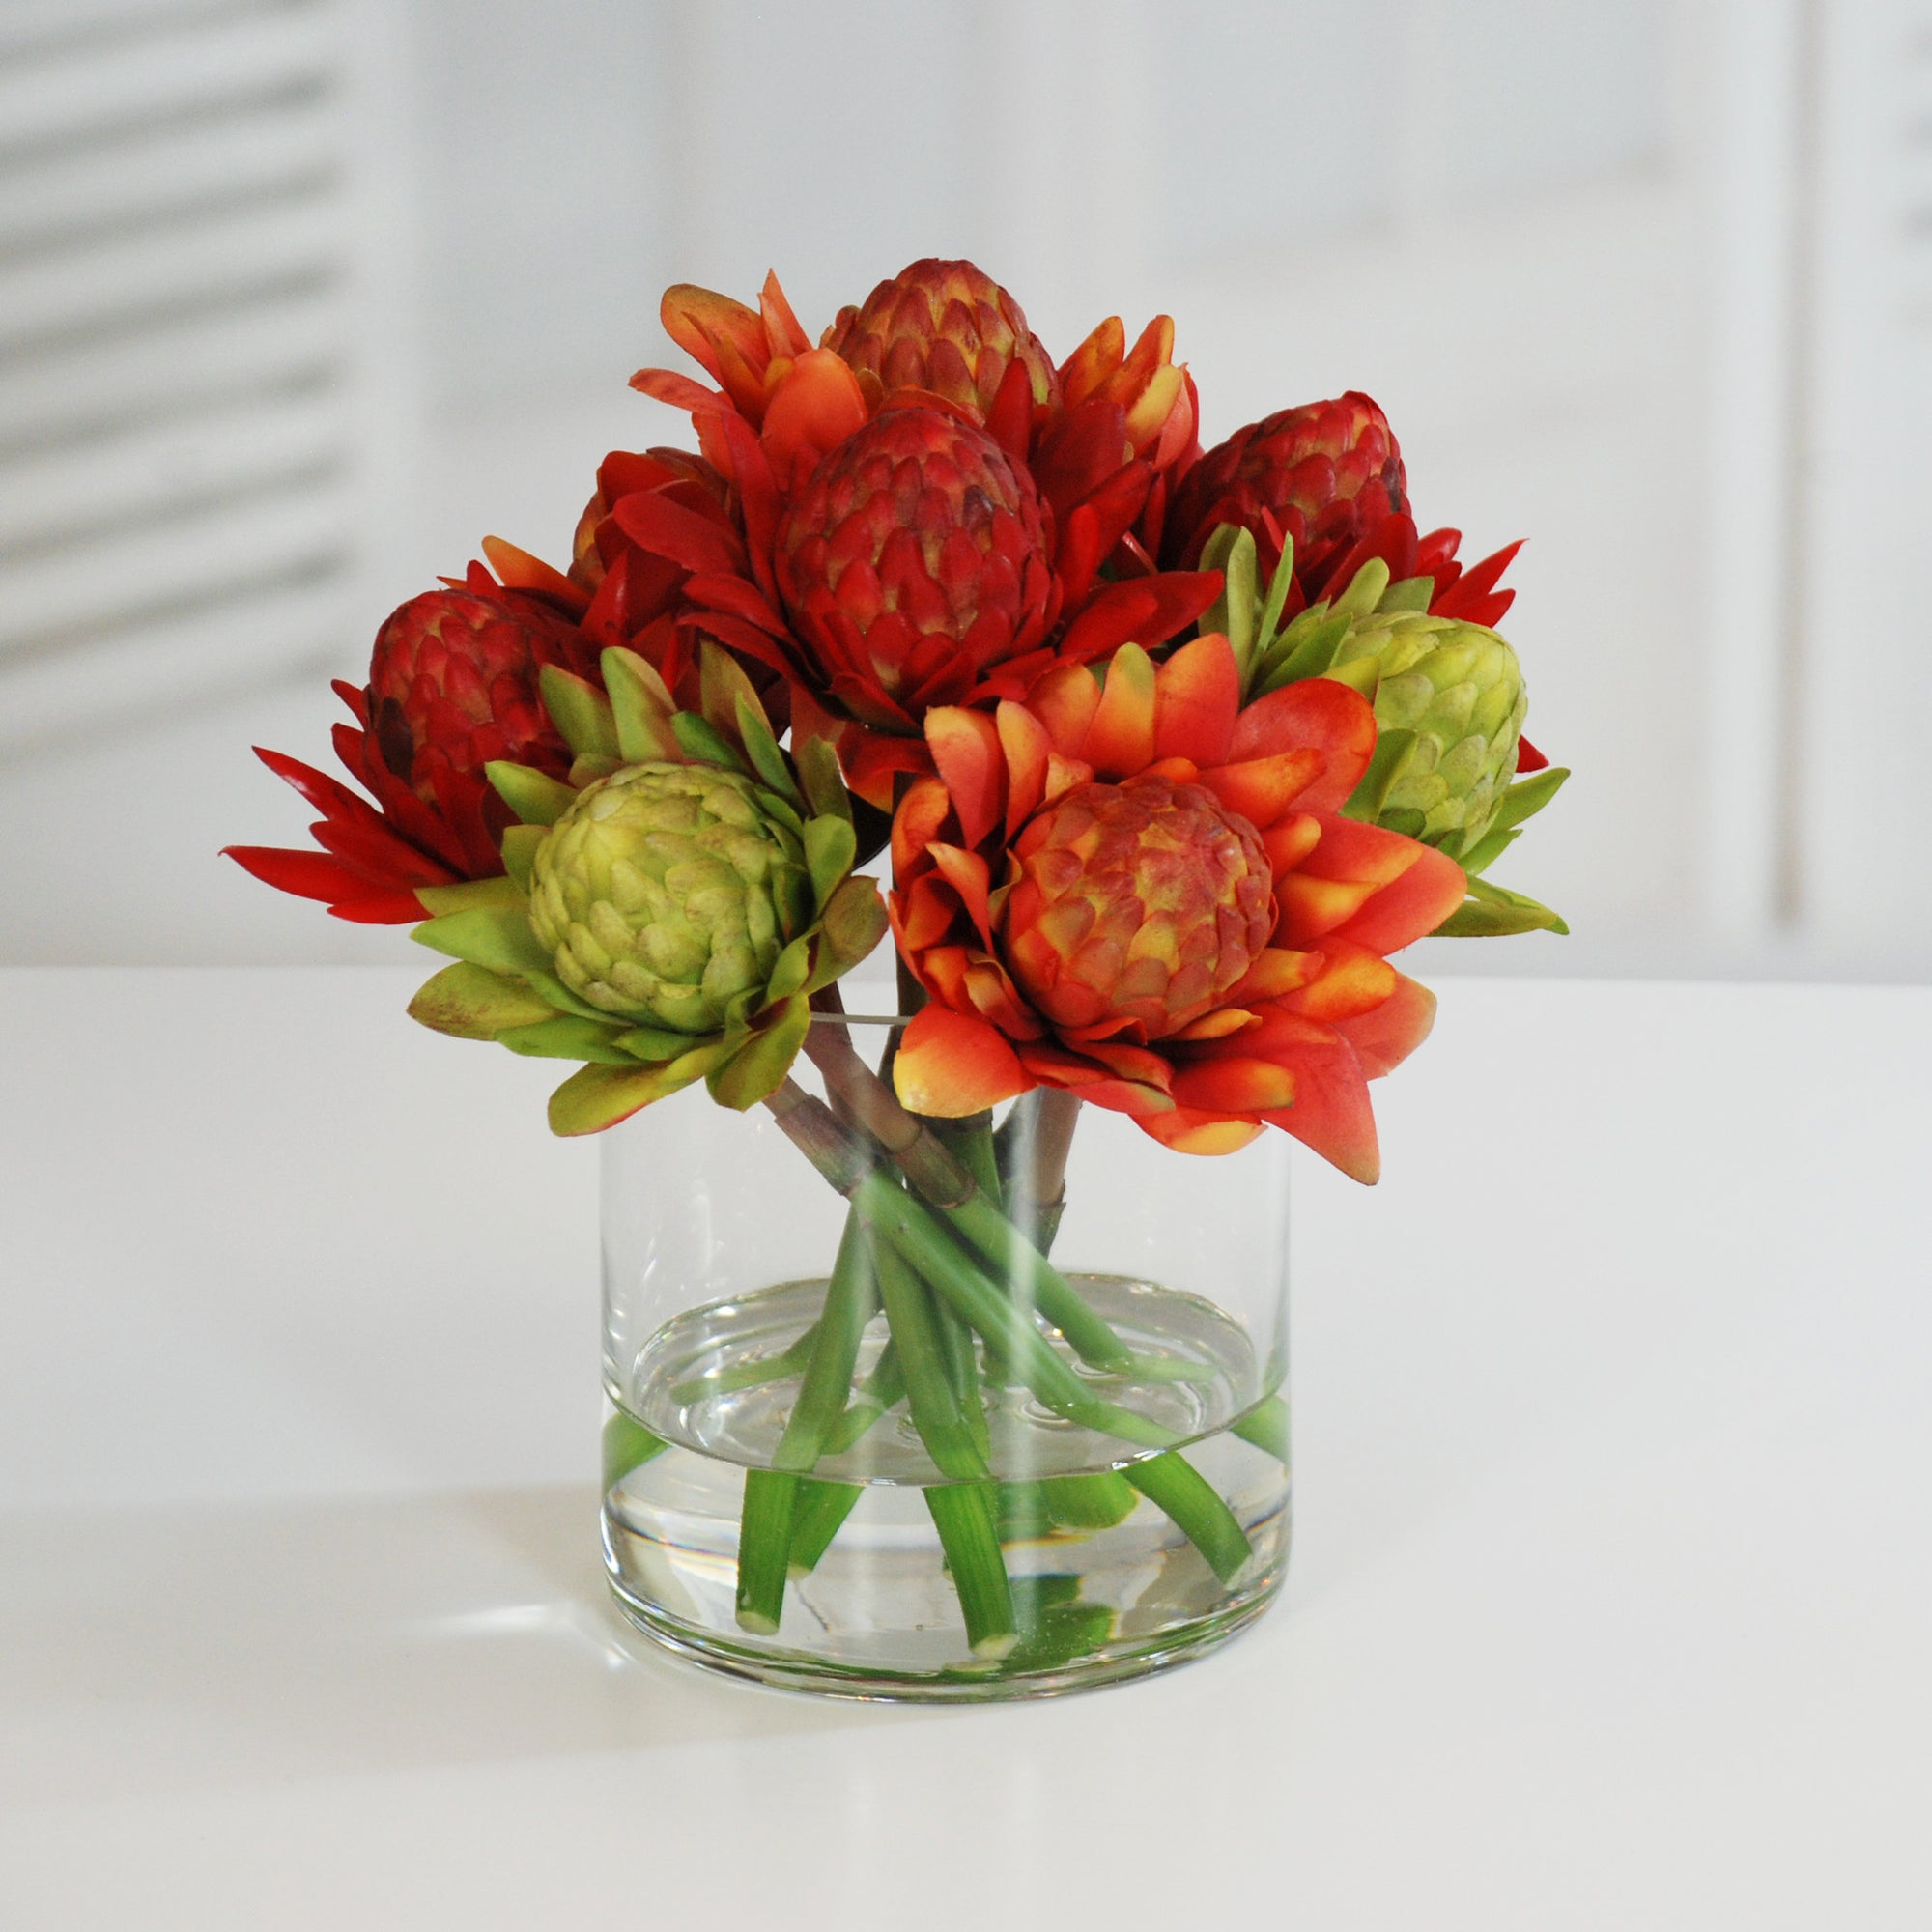 WARATAH BLOSSOM IN GLASS (WHI017-MI) - Winward Home silk flower arrangements